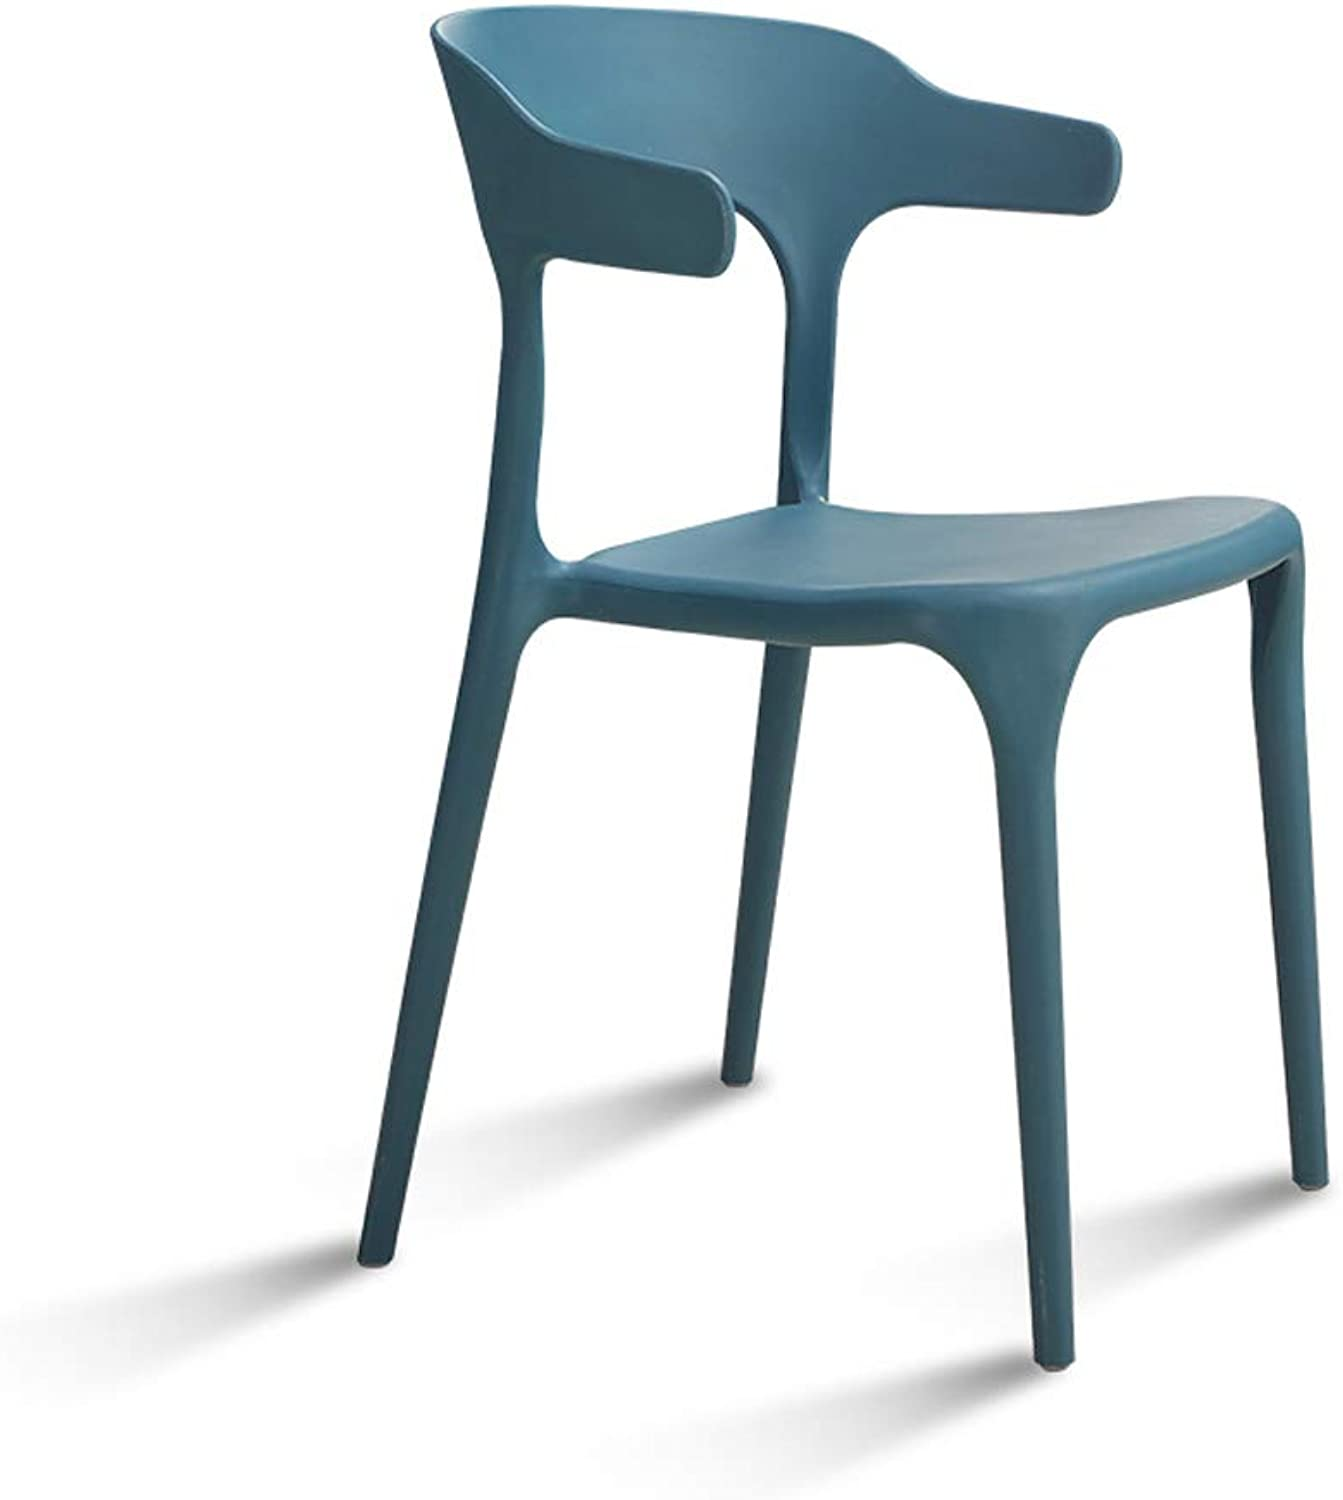 bluee Simple Plastic Dining Chair Adult Nordic Fashion Leisure Chair Restaurant Creative Horn Chair Home Back Stool